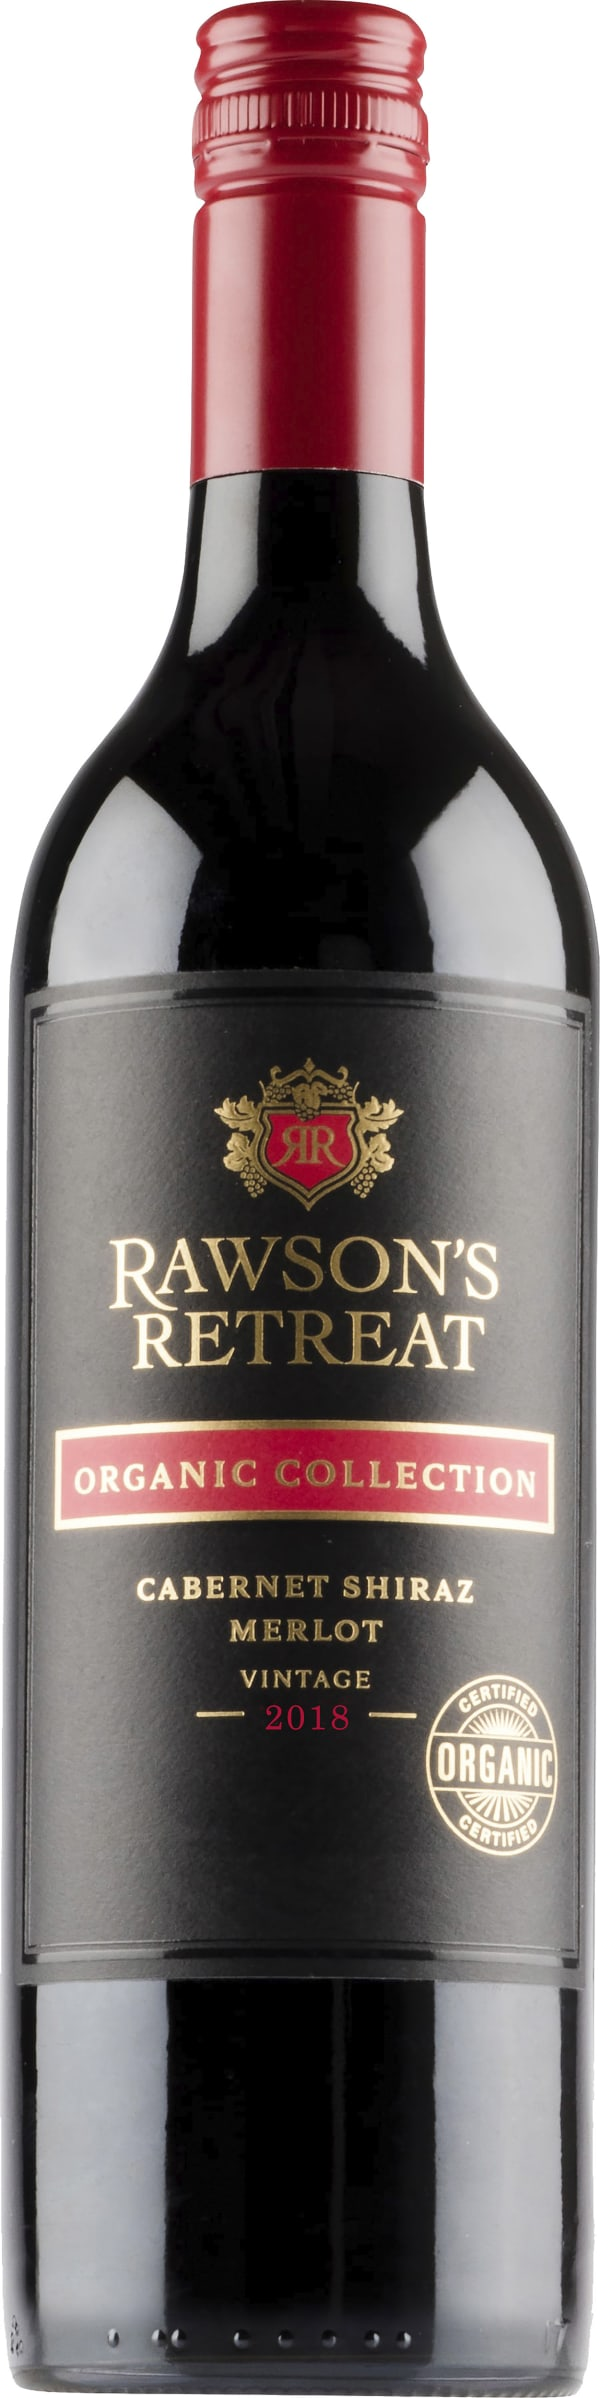 Rawson's Retreat Organic Collection Cabernet Shiraz Merlot 2016